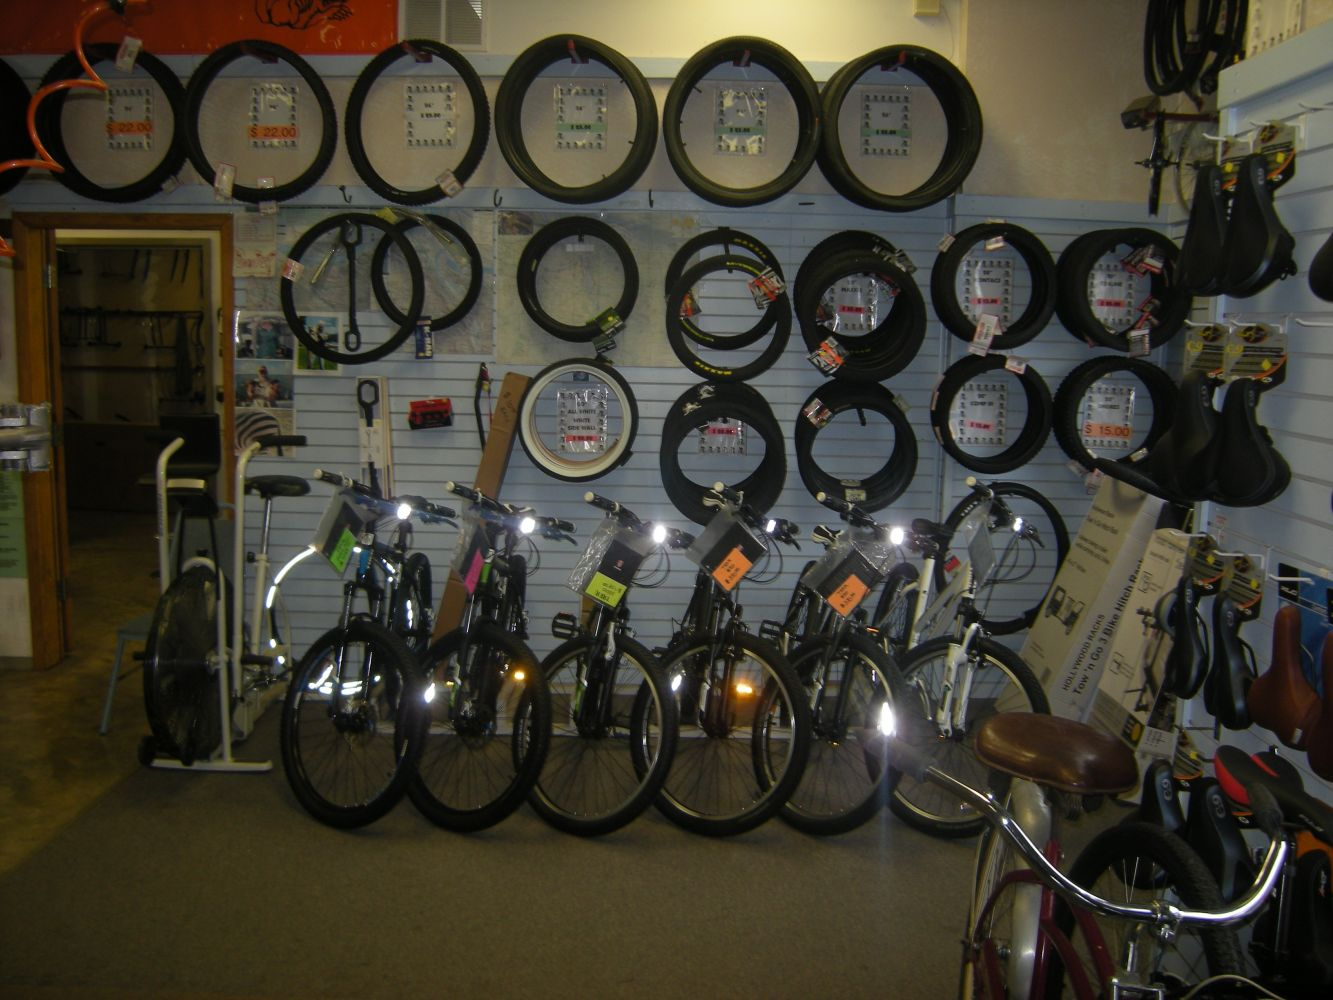 Bikes N More Canby Oregon Man making bike repairs to